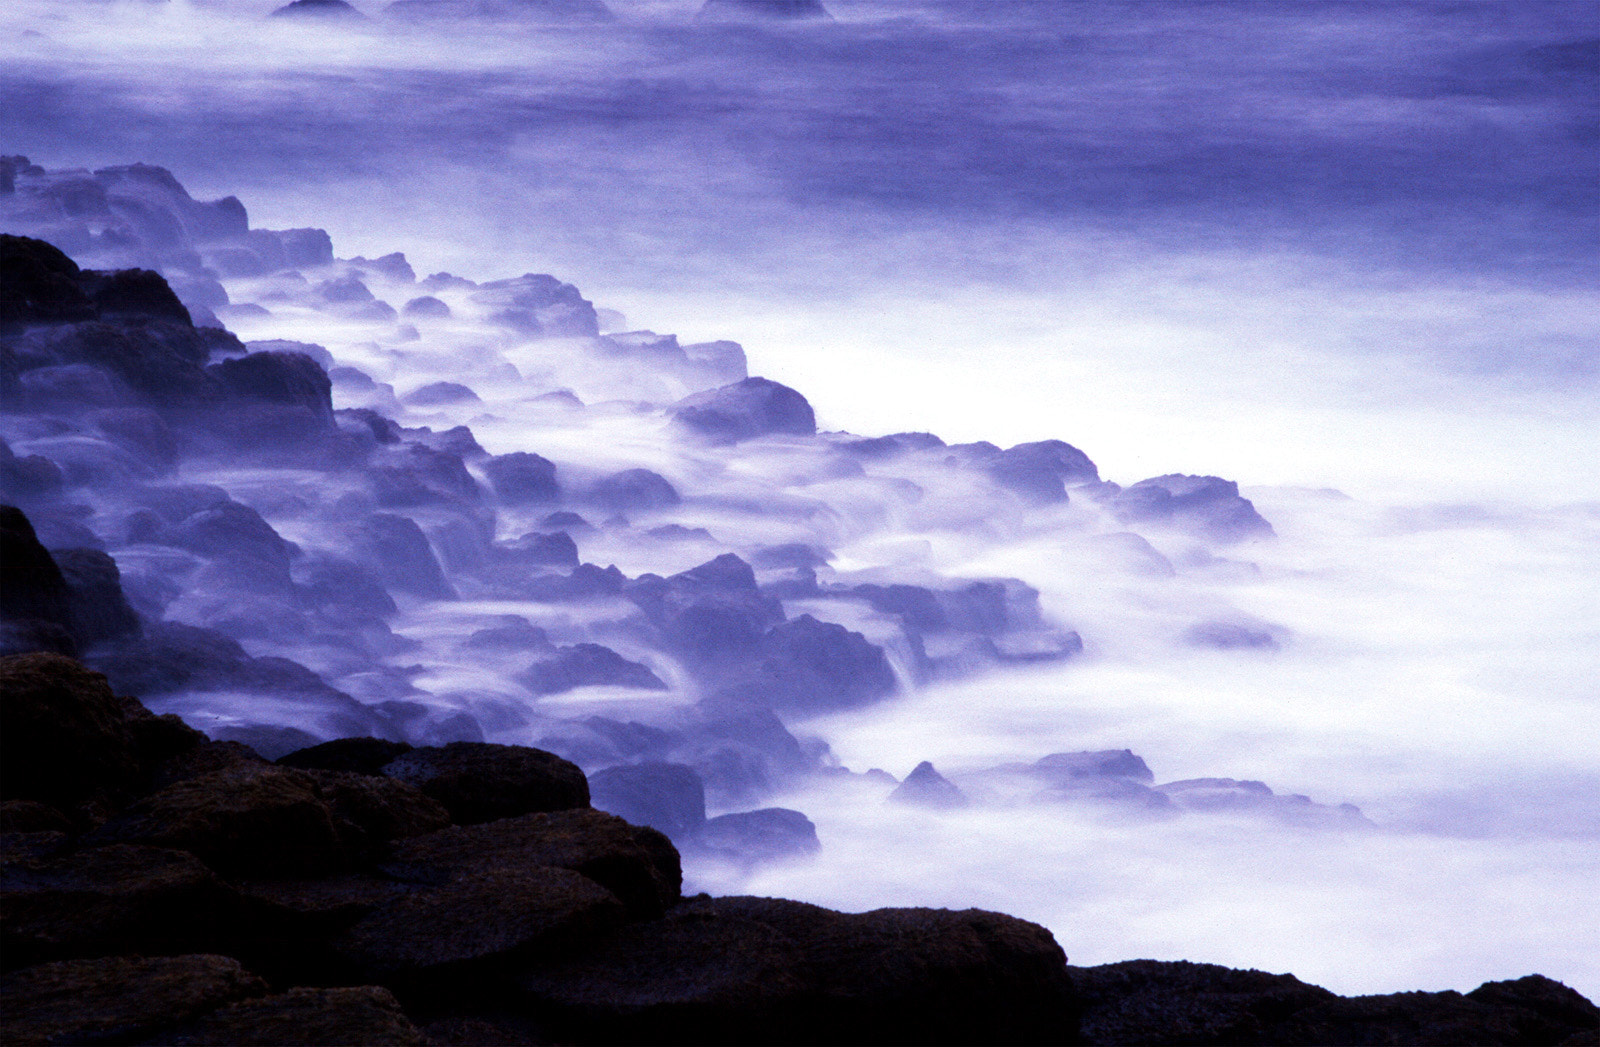 Photograph Giant's Causeway by Paul Moane on 500px